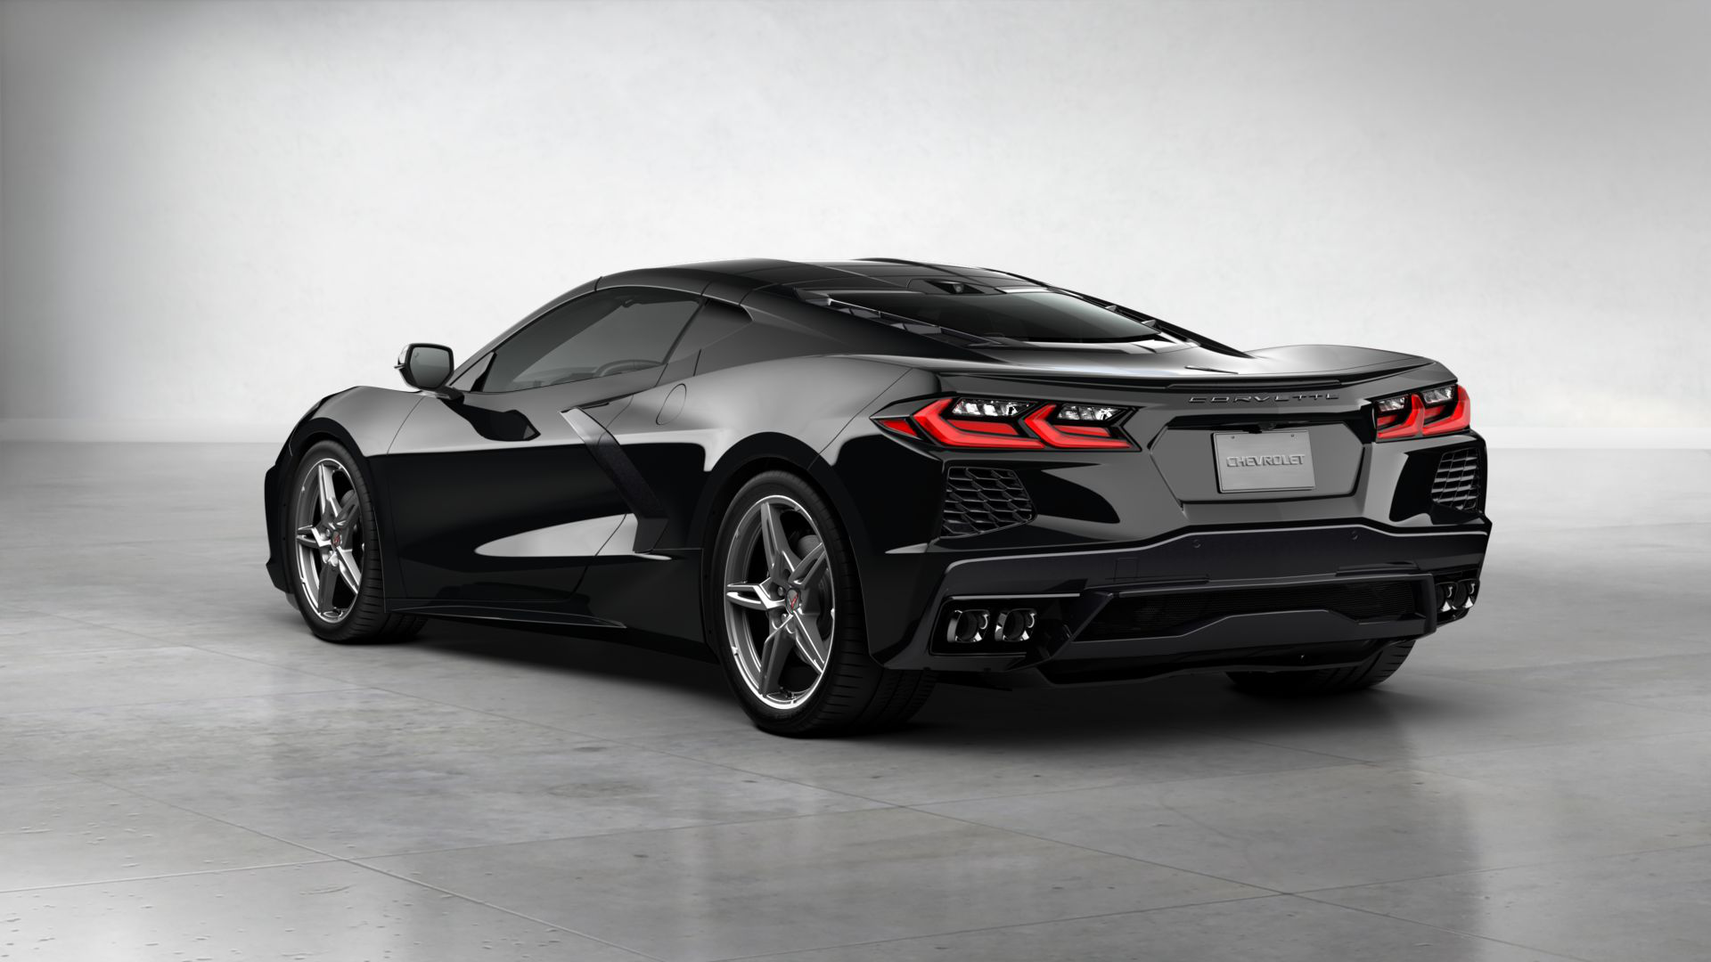 Chevrolet Corvette Stingray 2020 2LT Coupe